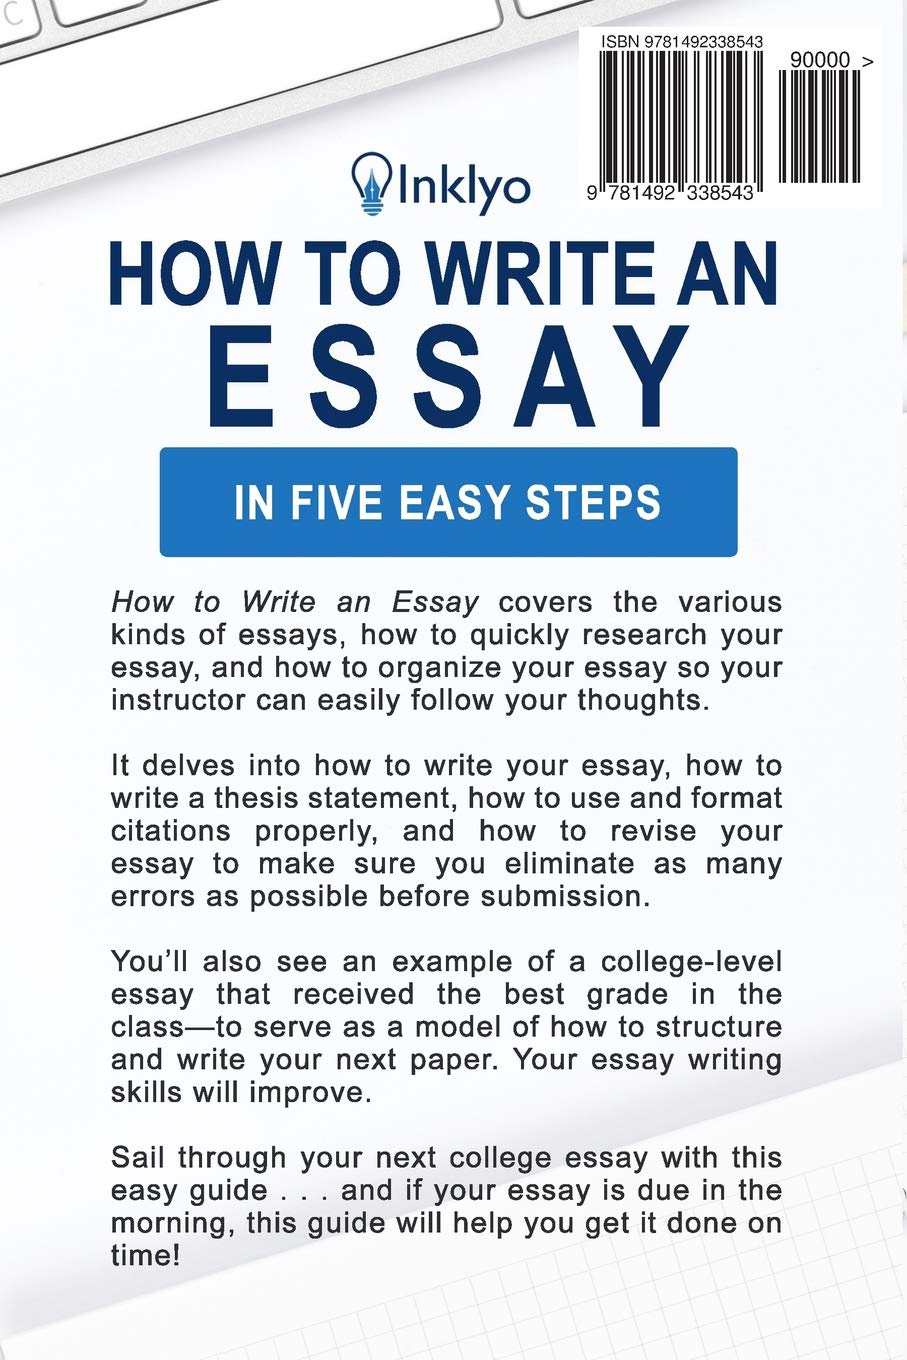 004 Essay Example How To Write And Unique An Outline 6th Grade Conclusion In Mla Format Full